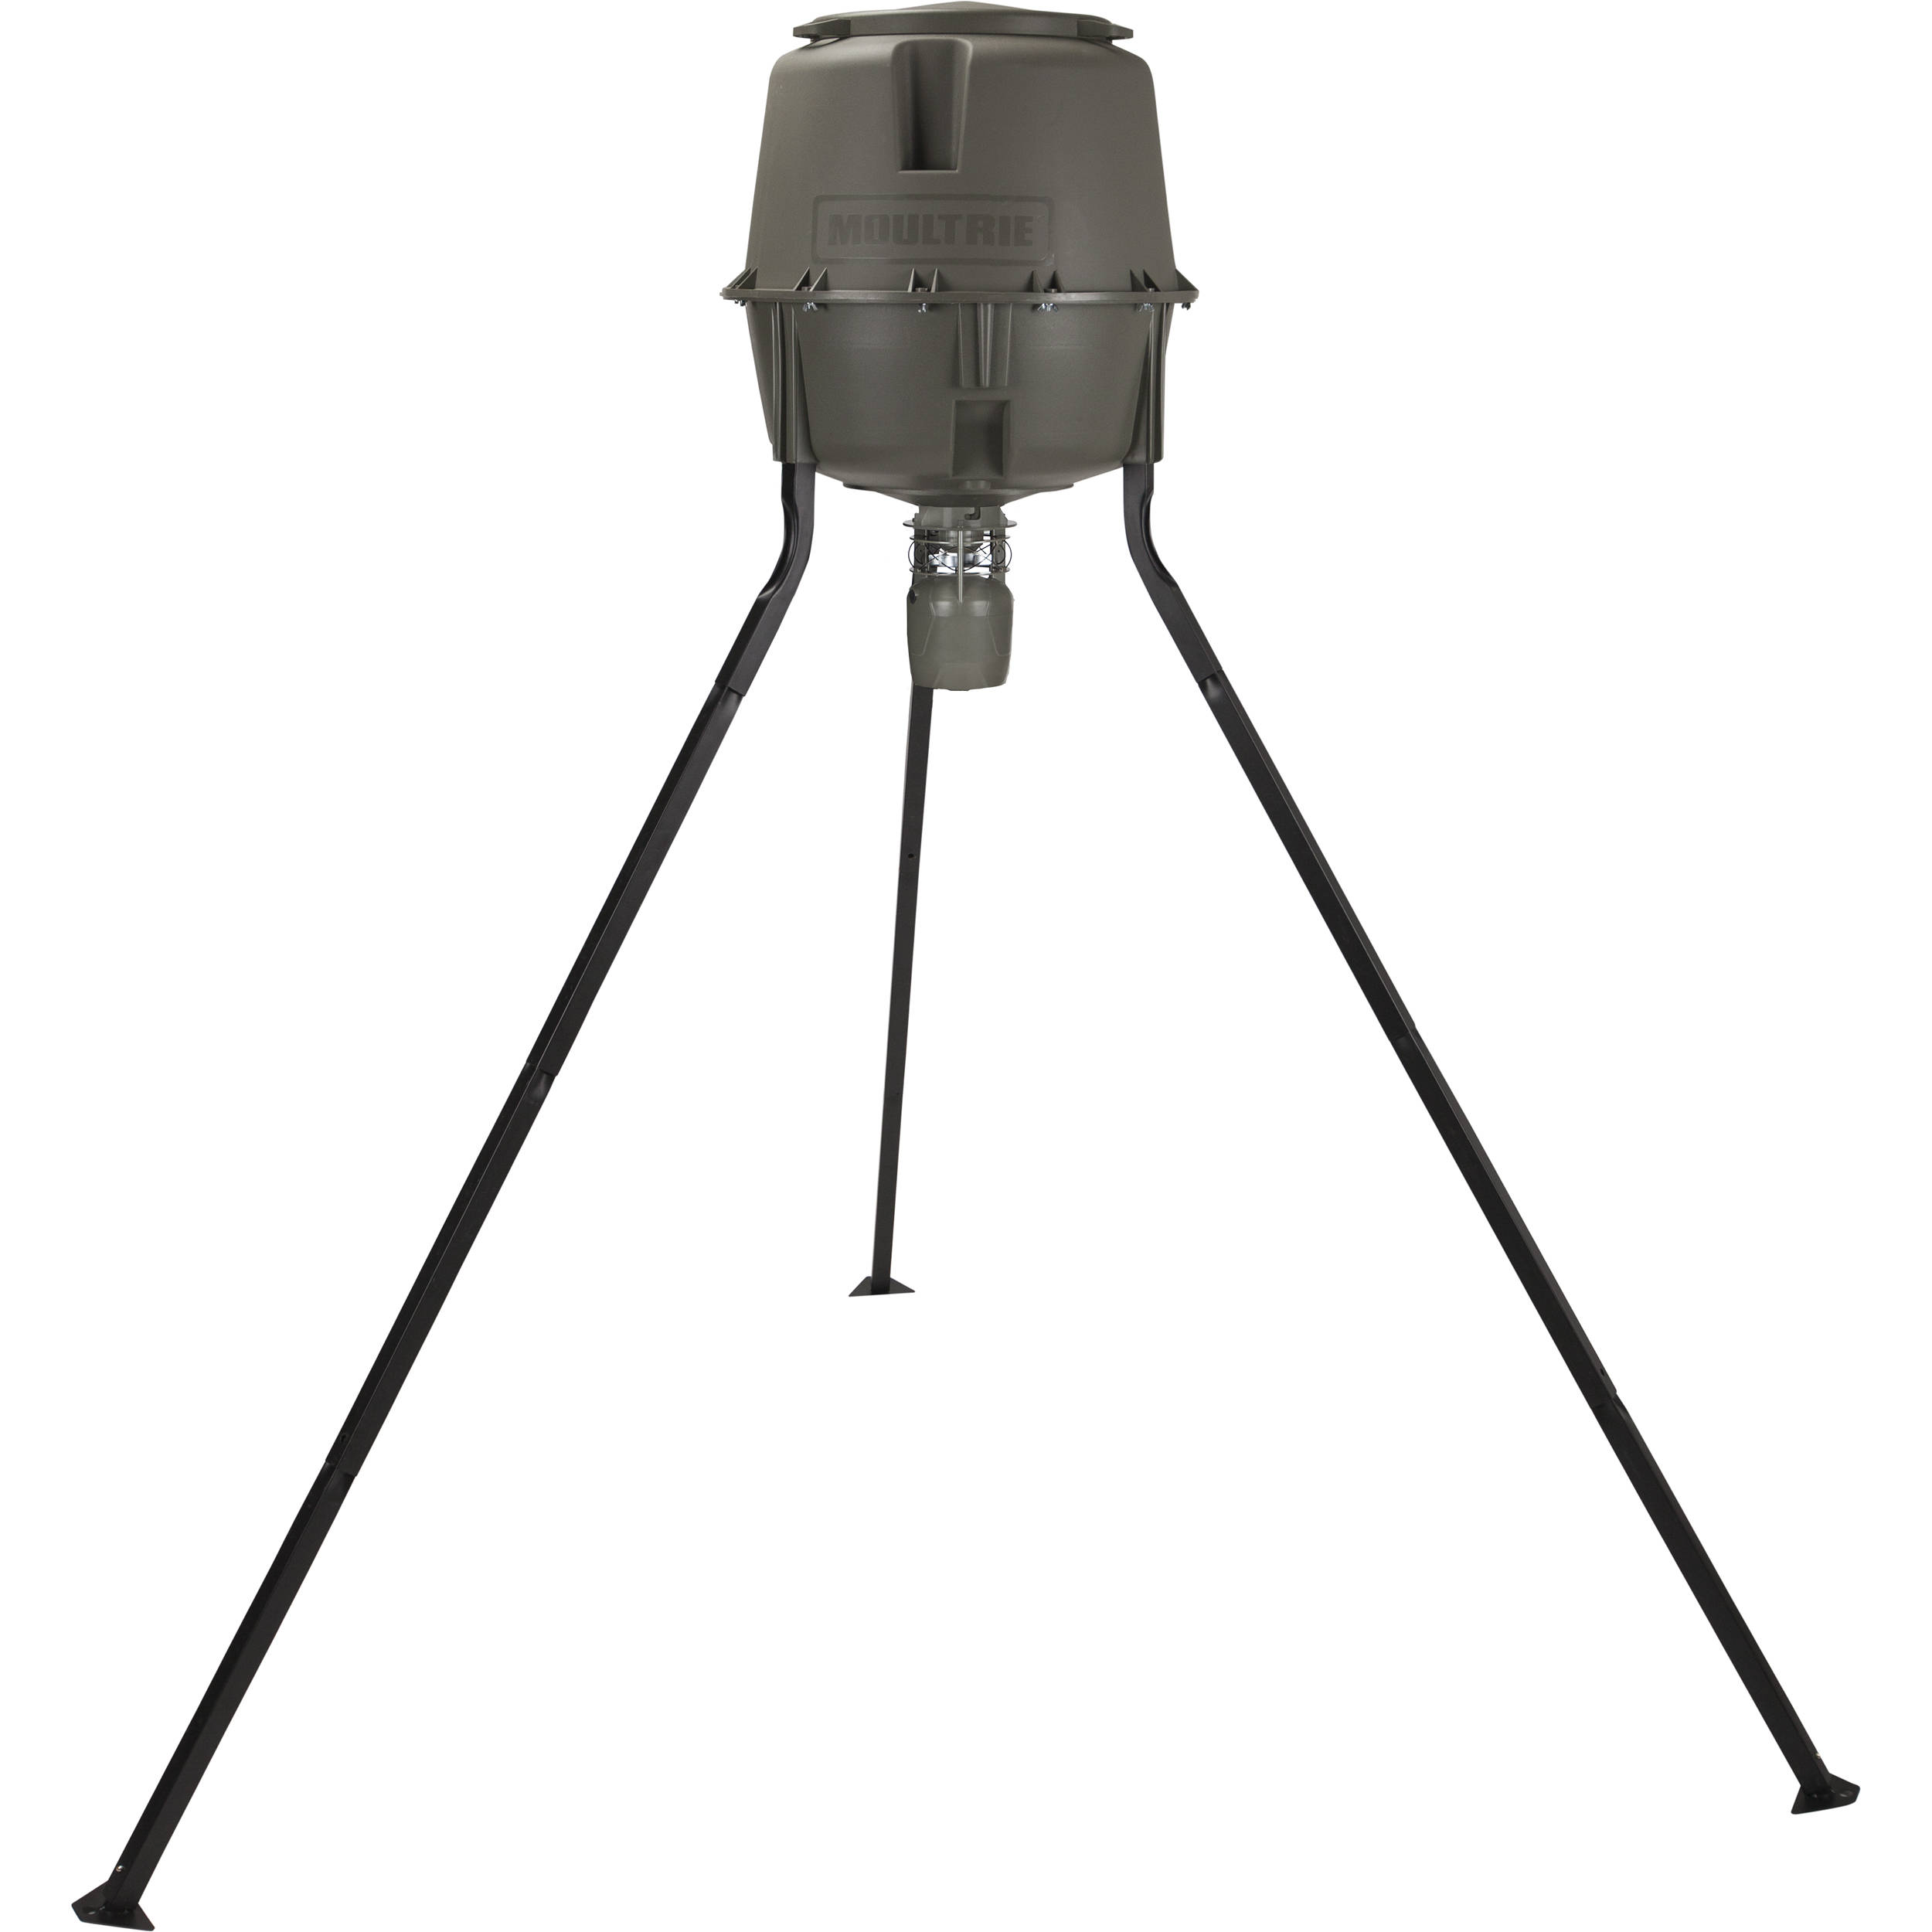 tripod index hunter deer black moultrie ts feeder pro gallon product digital